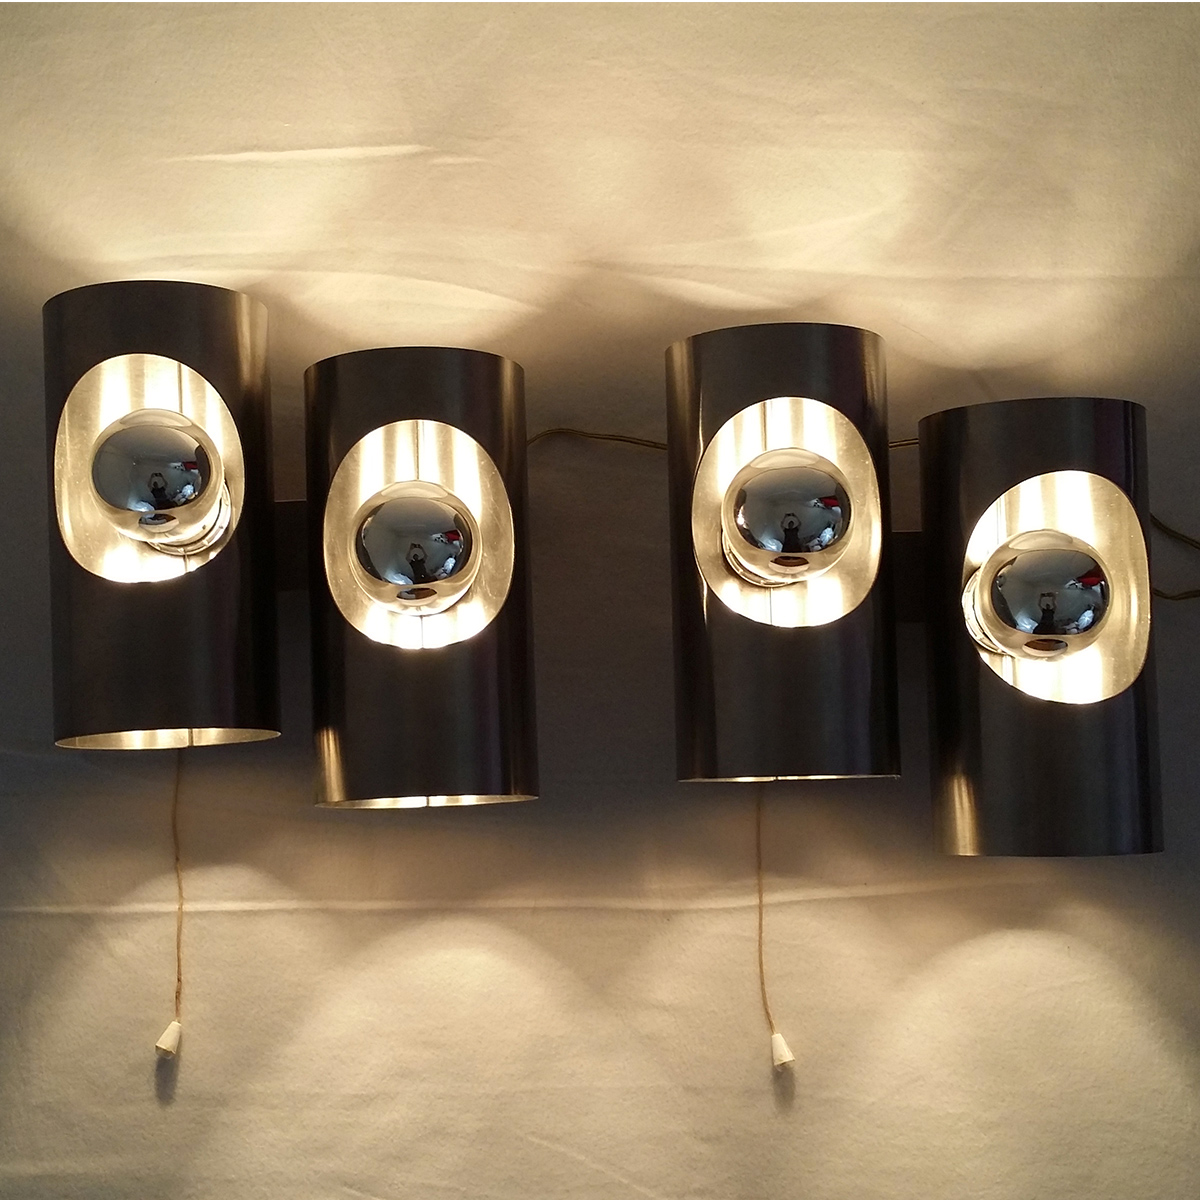 sconces-set-biny-vintage-wall-lamp